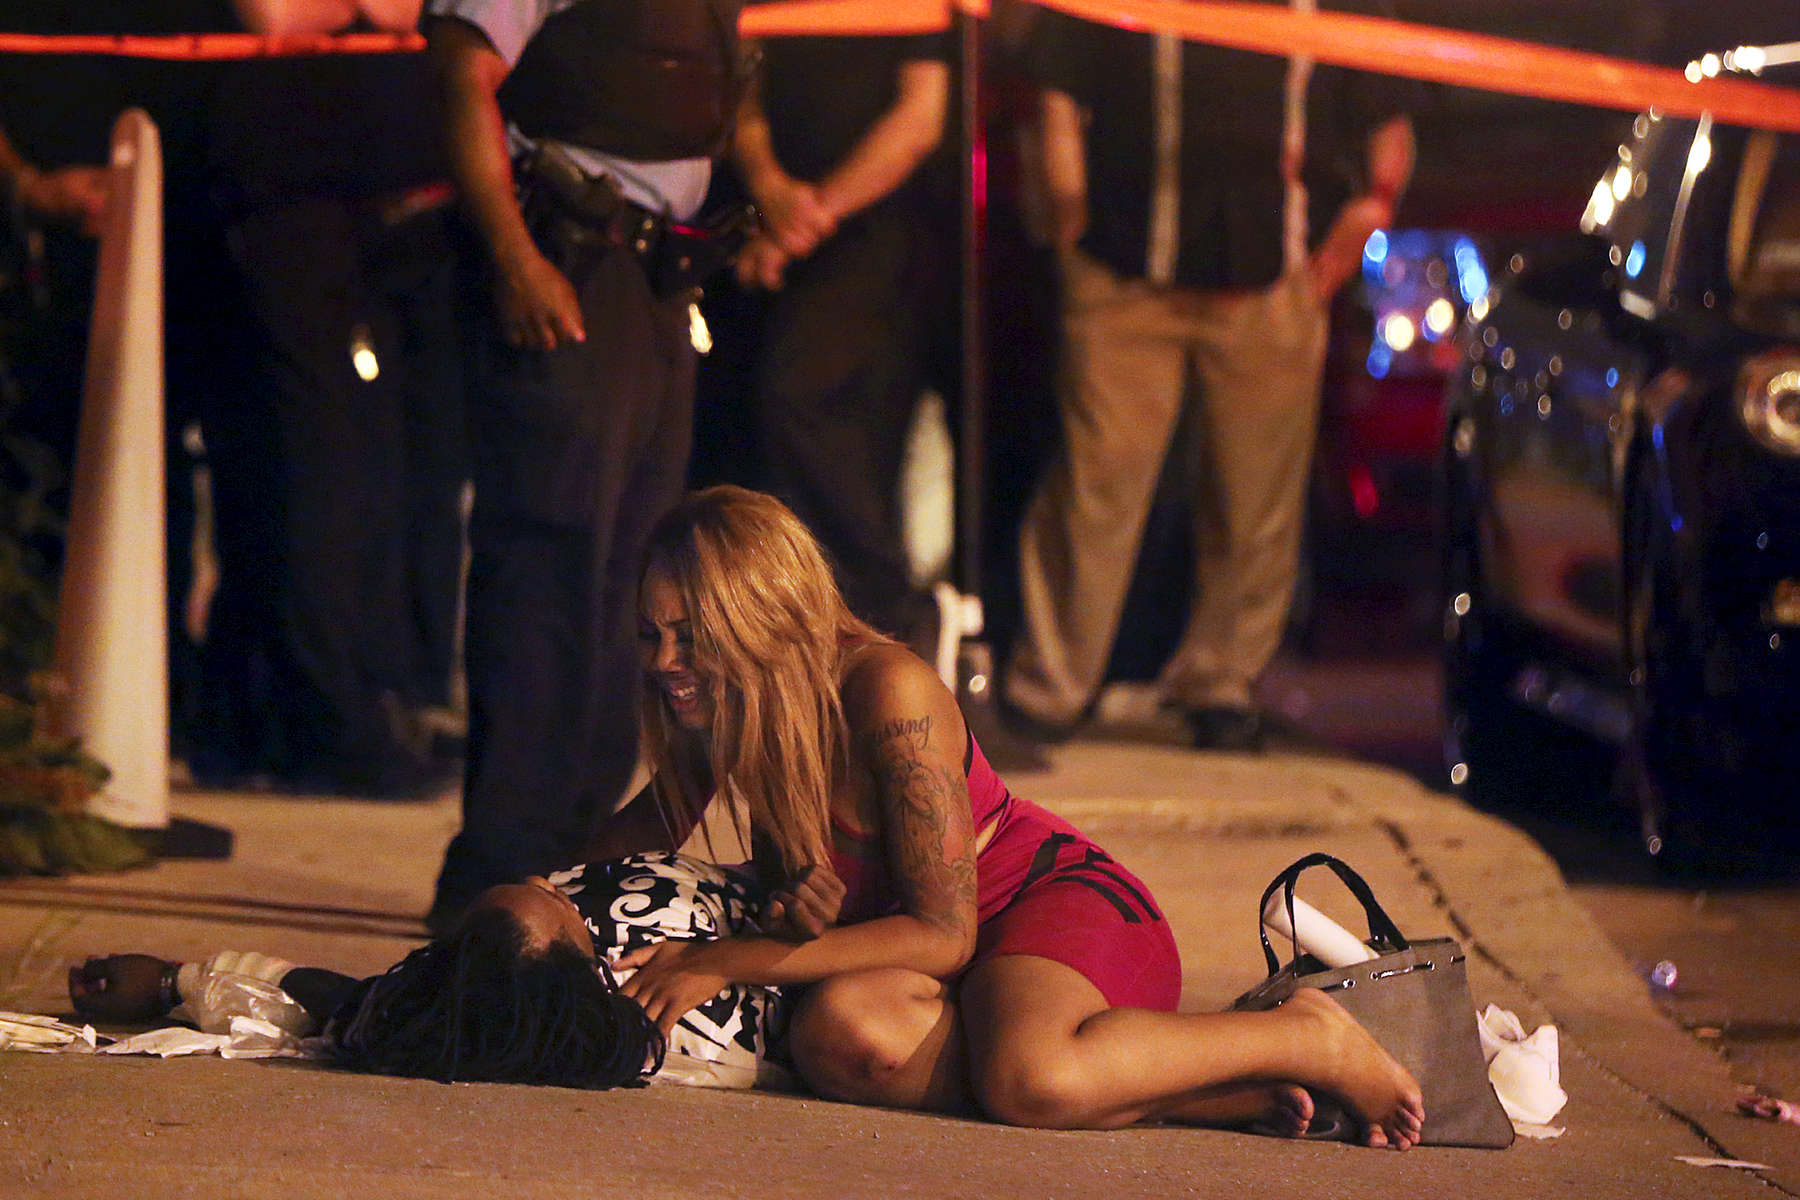 A woman comforts a shooting victim as paramedics bring a stretcher at the scene where two people were shot, one of whom was killed, in the 800 block of North Orleans Street in Chicago.